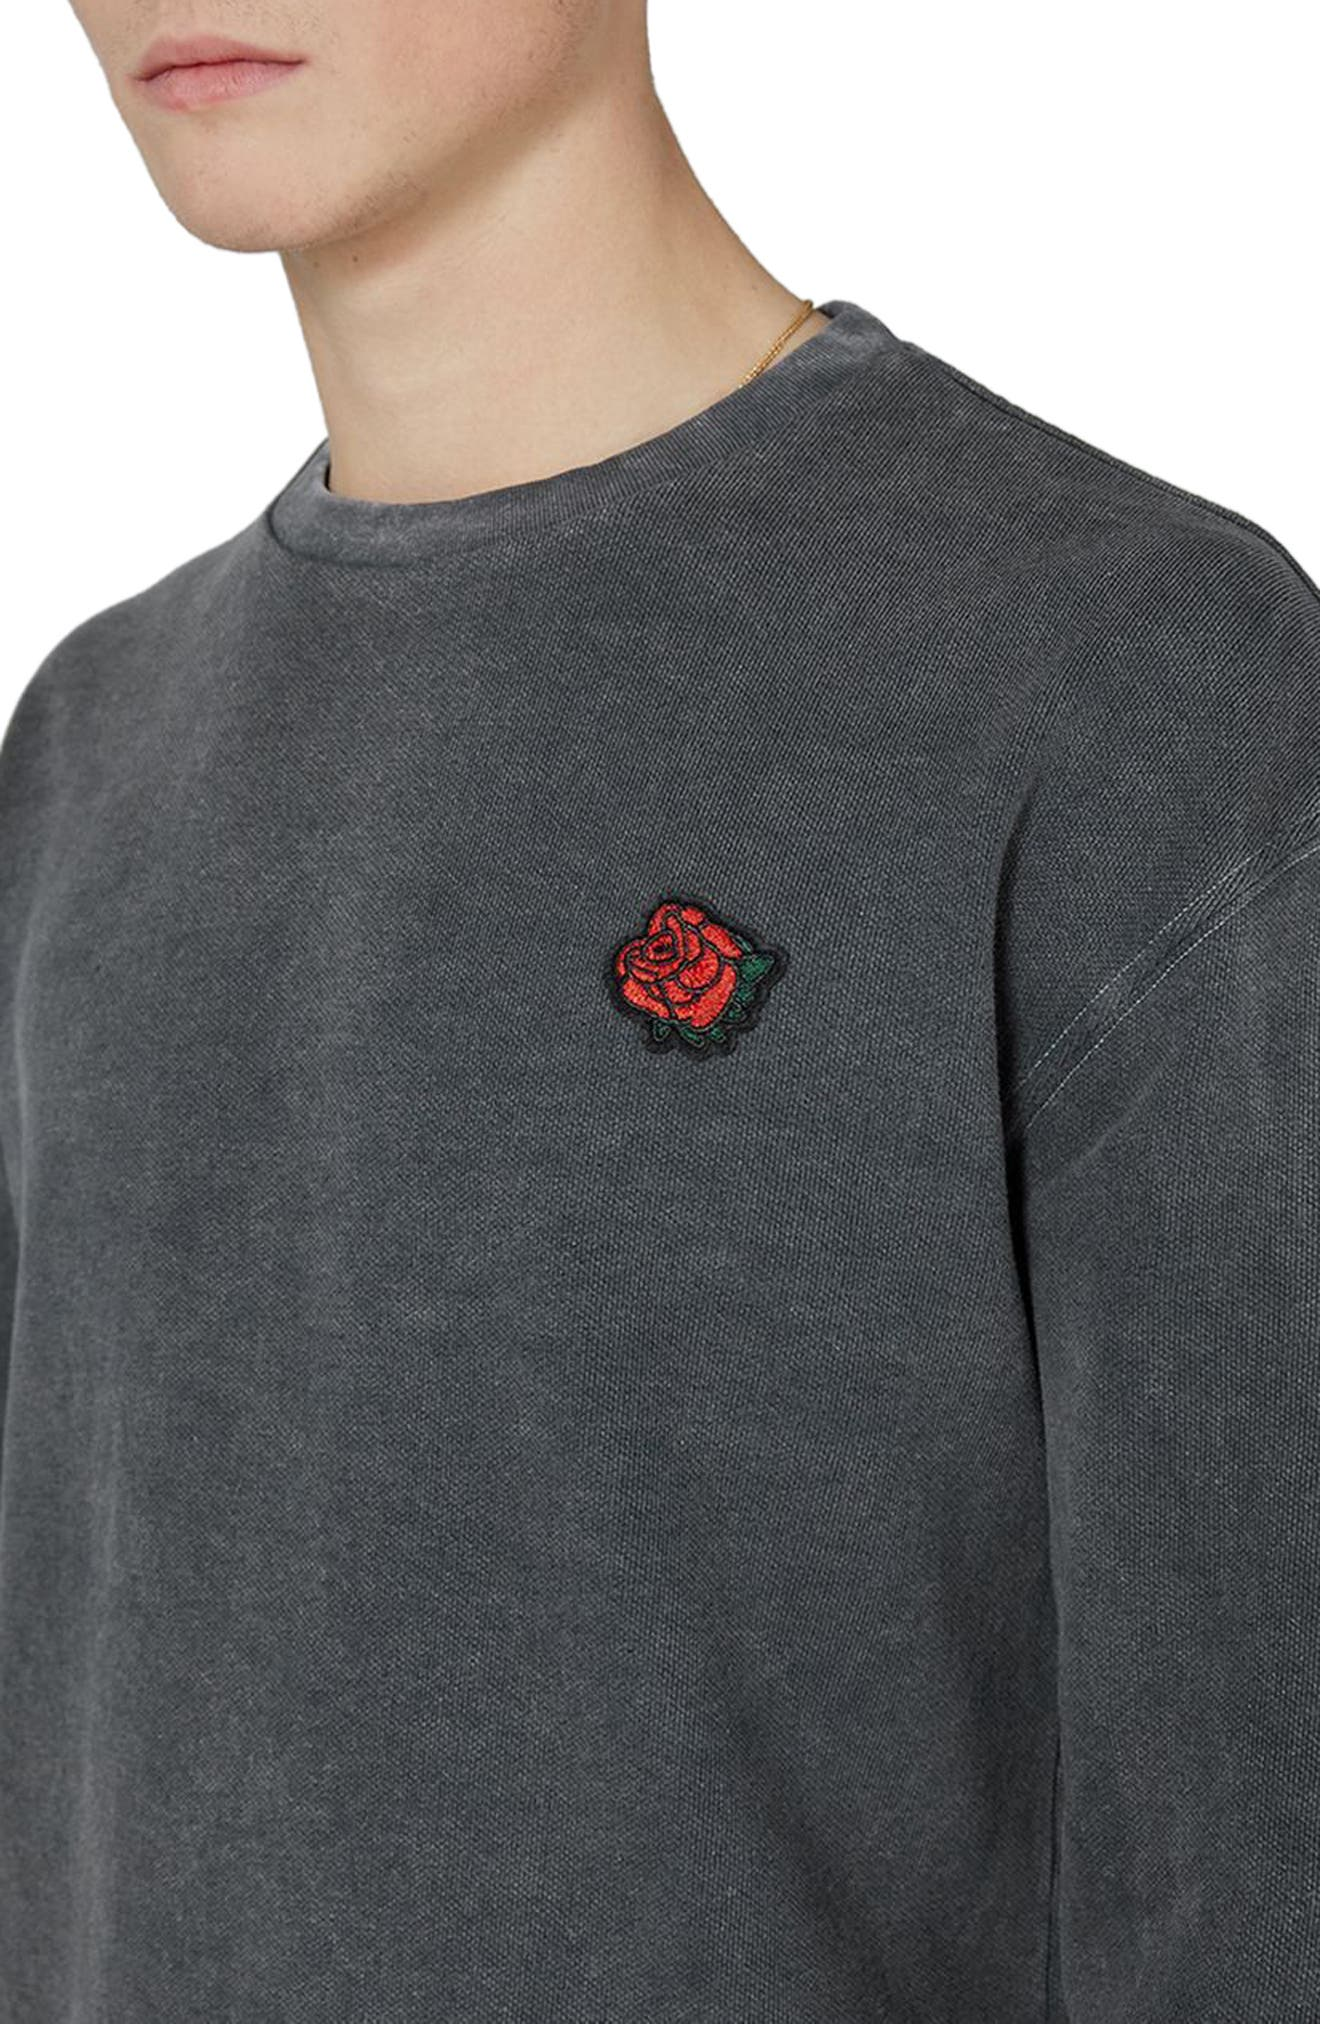 Percy Rose Embroidered Sweatshirt,                             Alternate thumbnail 3, color,                             Grey